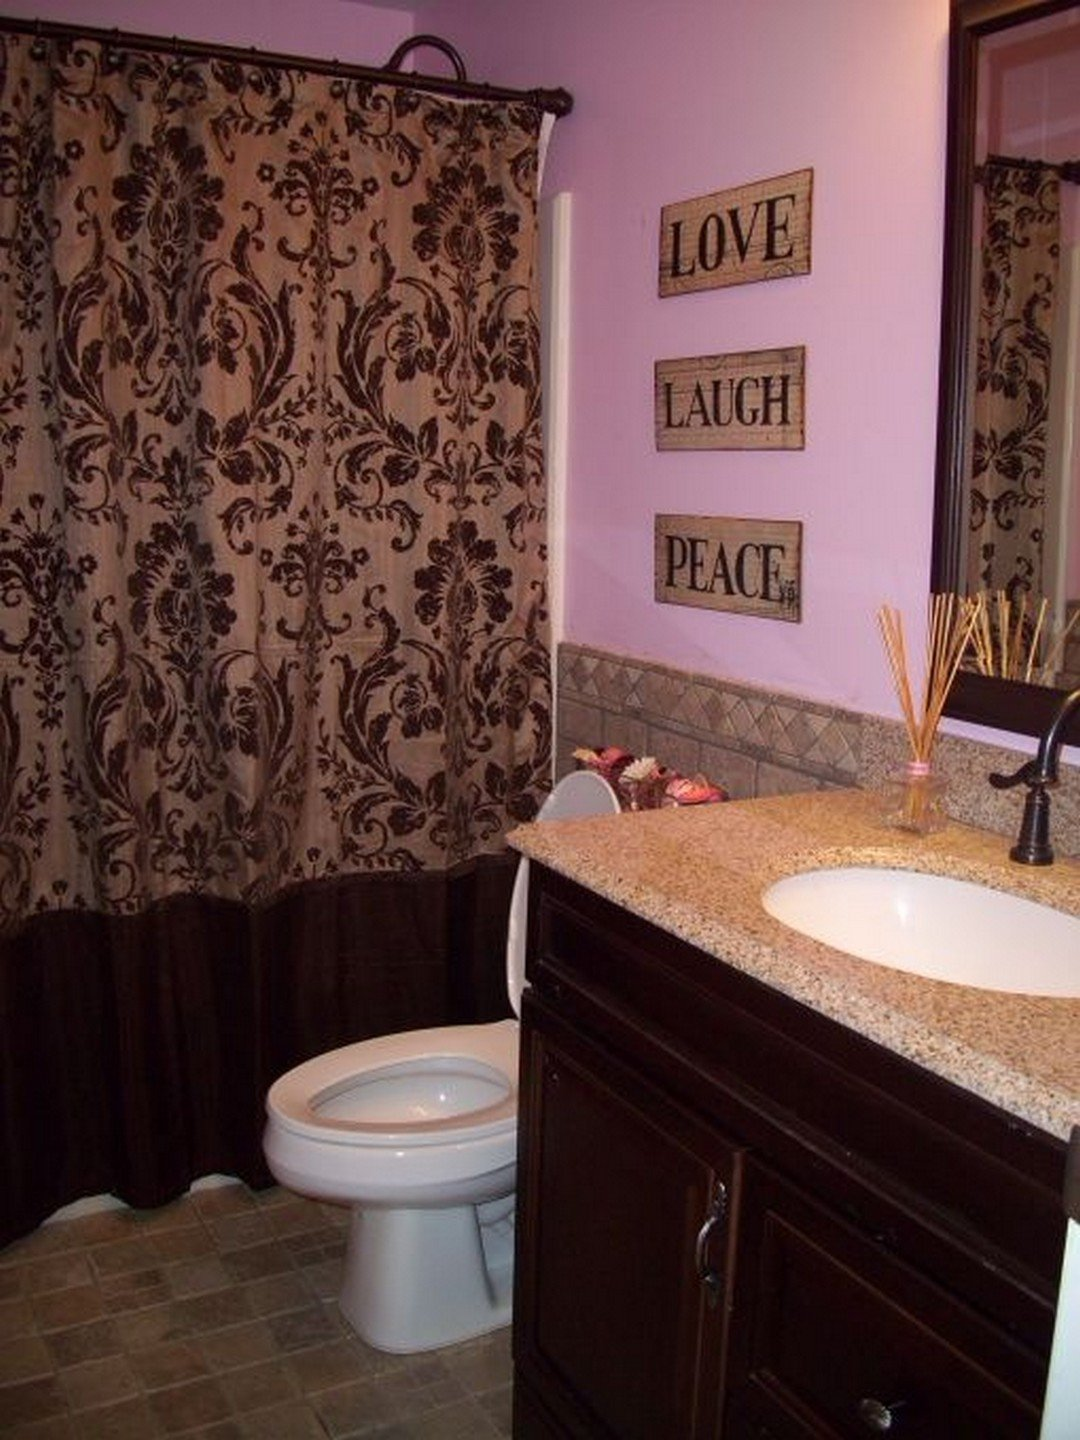 Red and Brown Bathroom Decor Lovely Pink and Brown Perfect Bination Of Bathroom Designs You Should Copy Goodnewsarchitecture